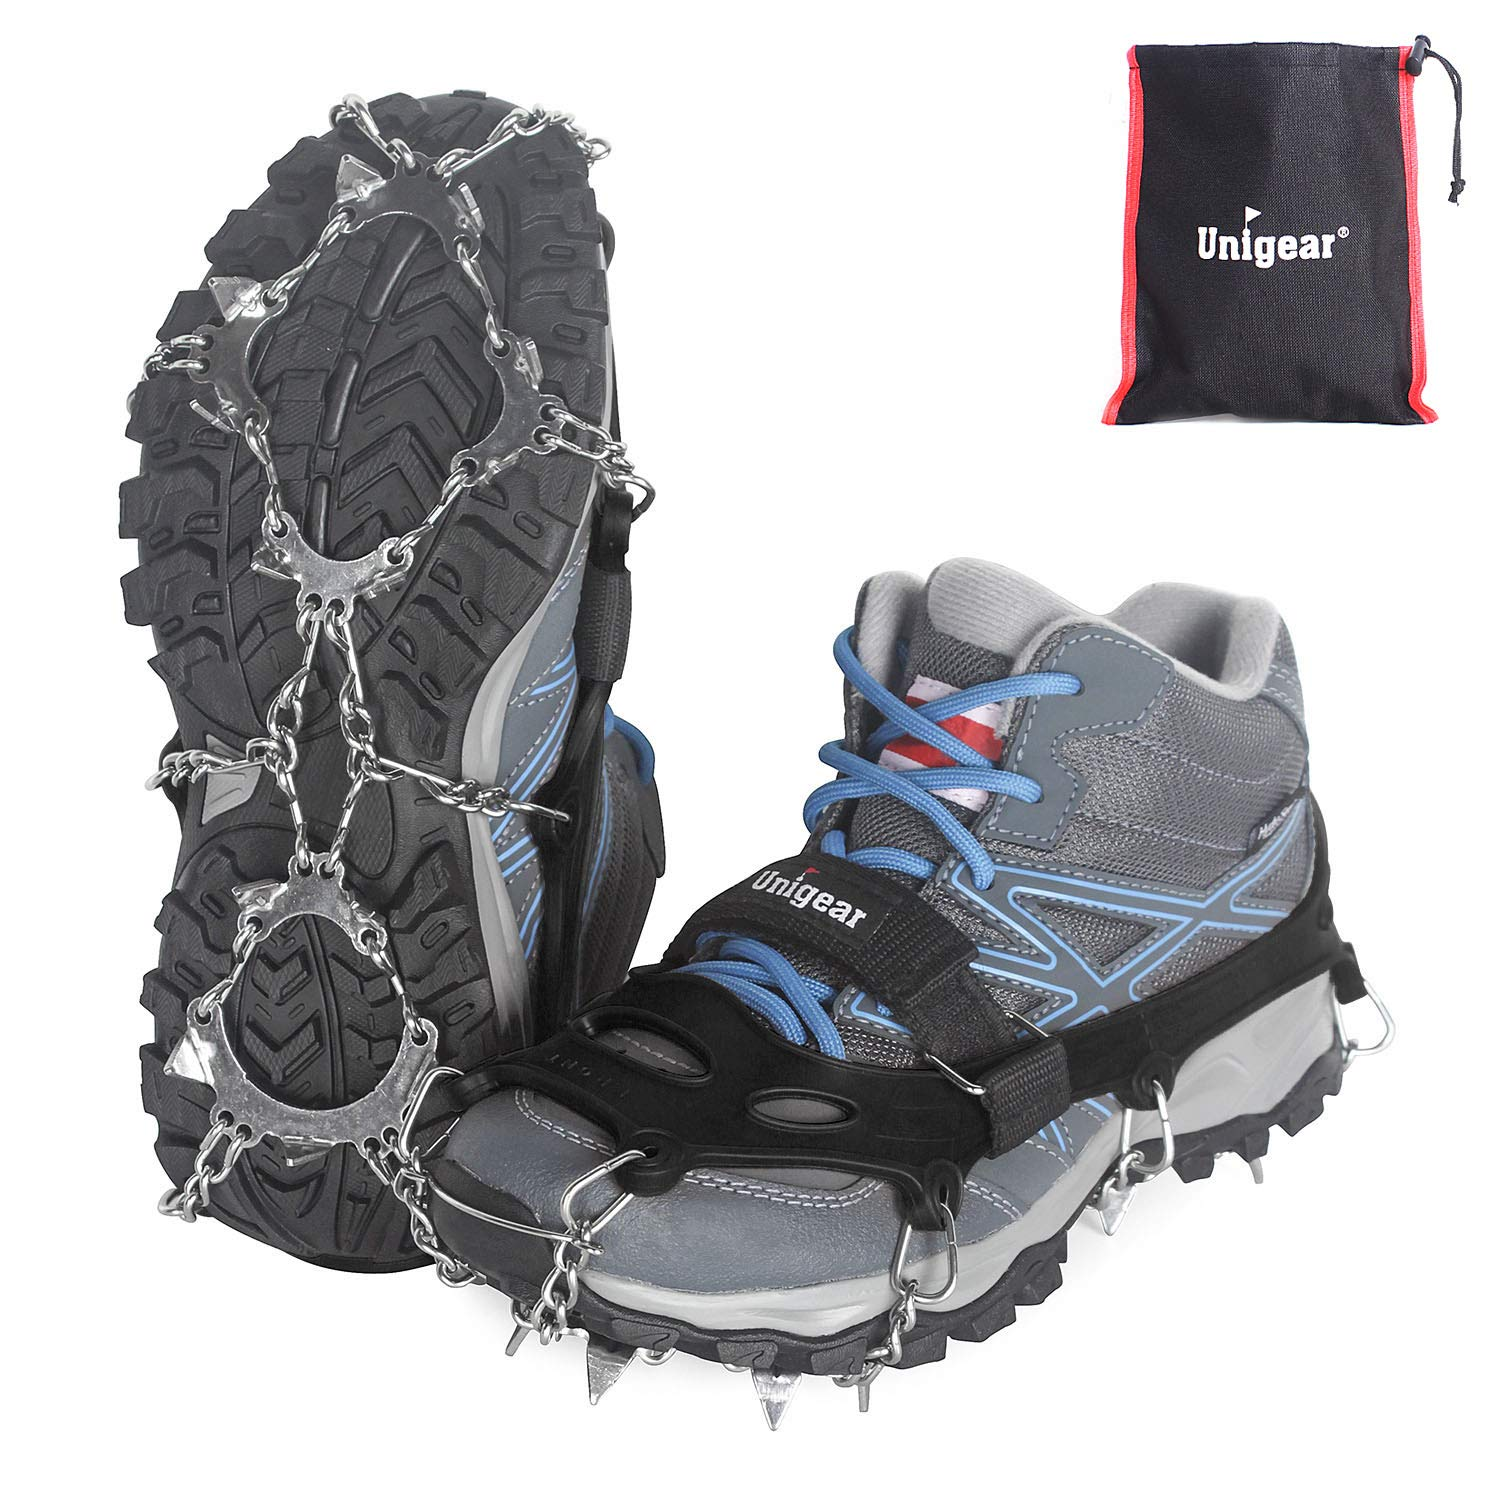 Unigear Traction Cleats Ice Snow Grips for Walking, Jogging, Climbing, Hiking